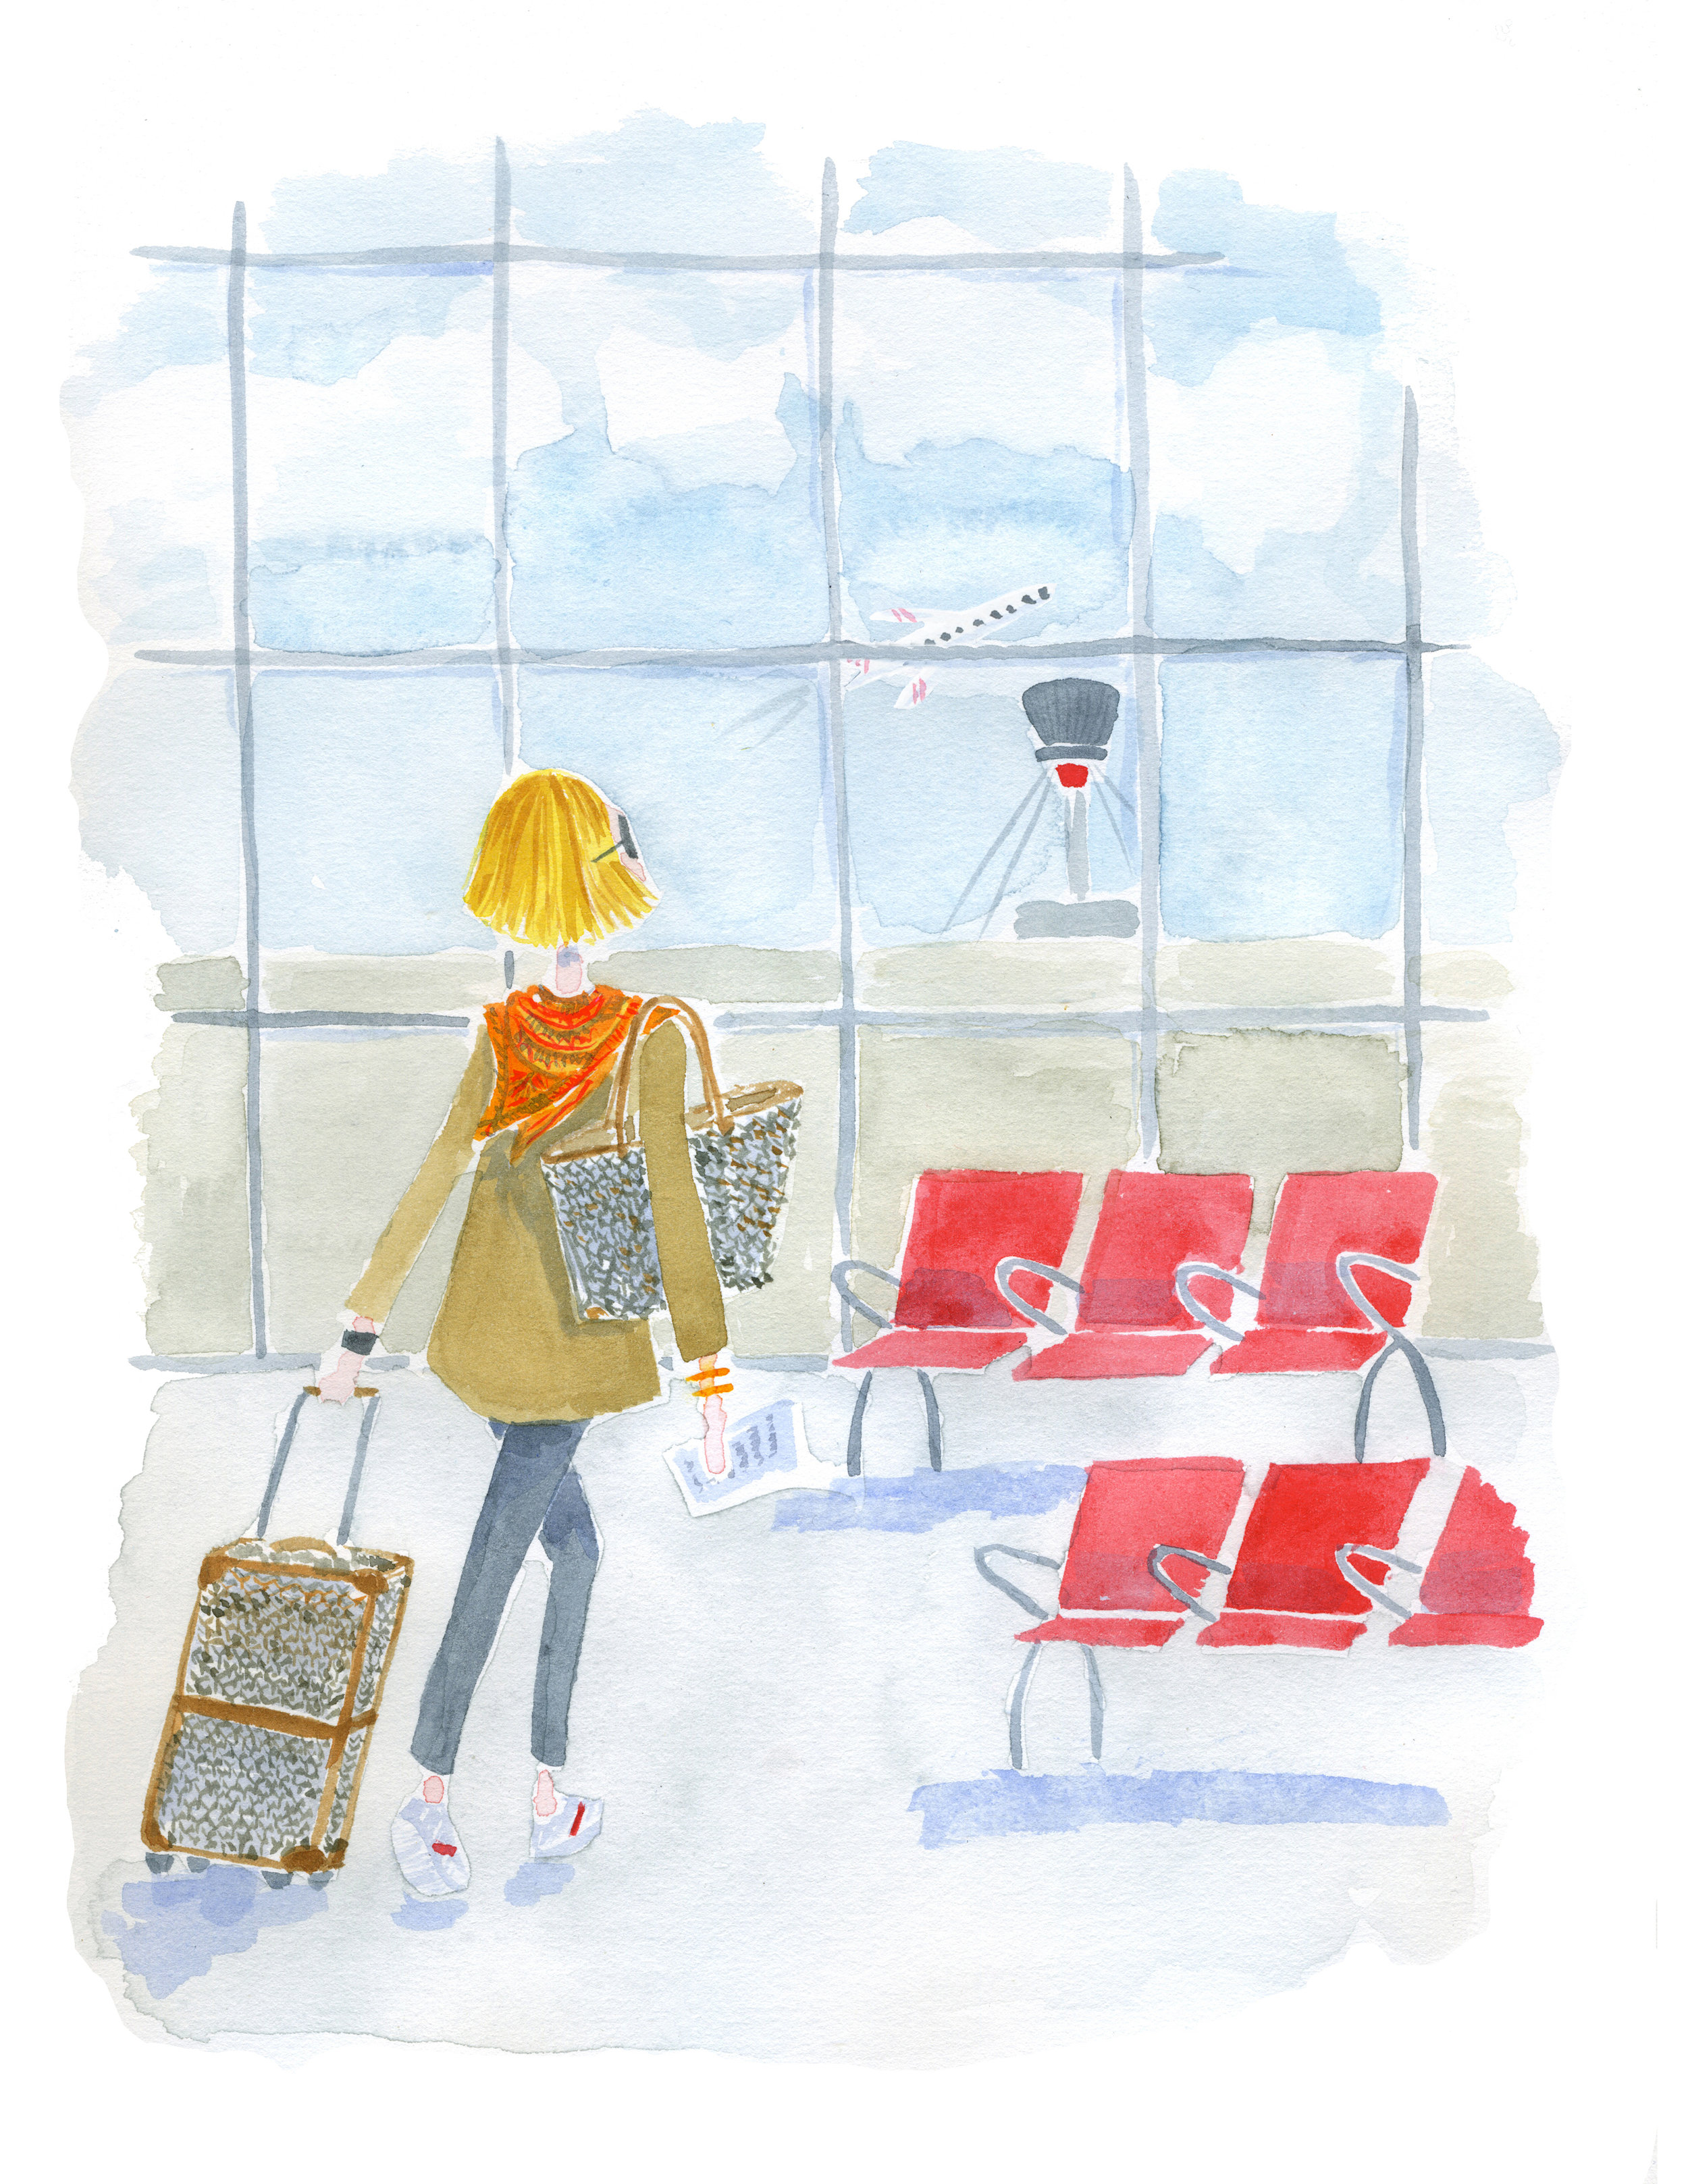 The Frances Flair Illustrations - Airport.jpg